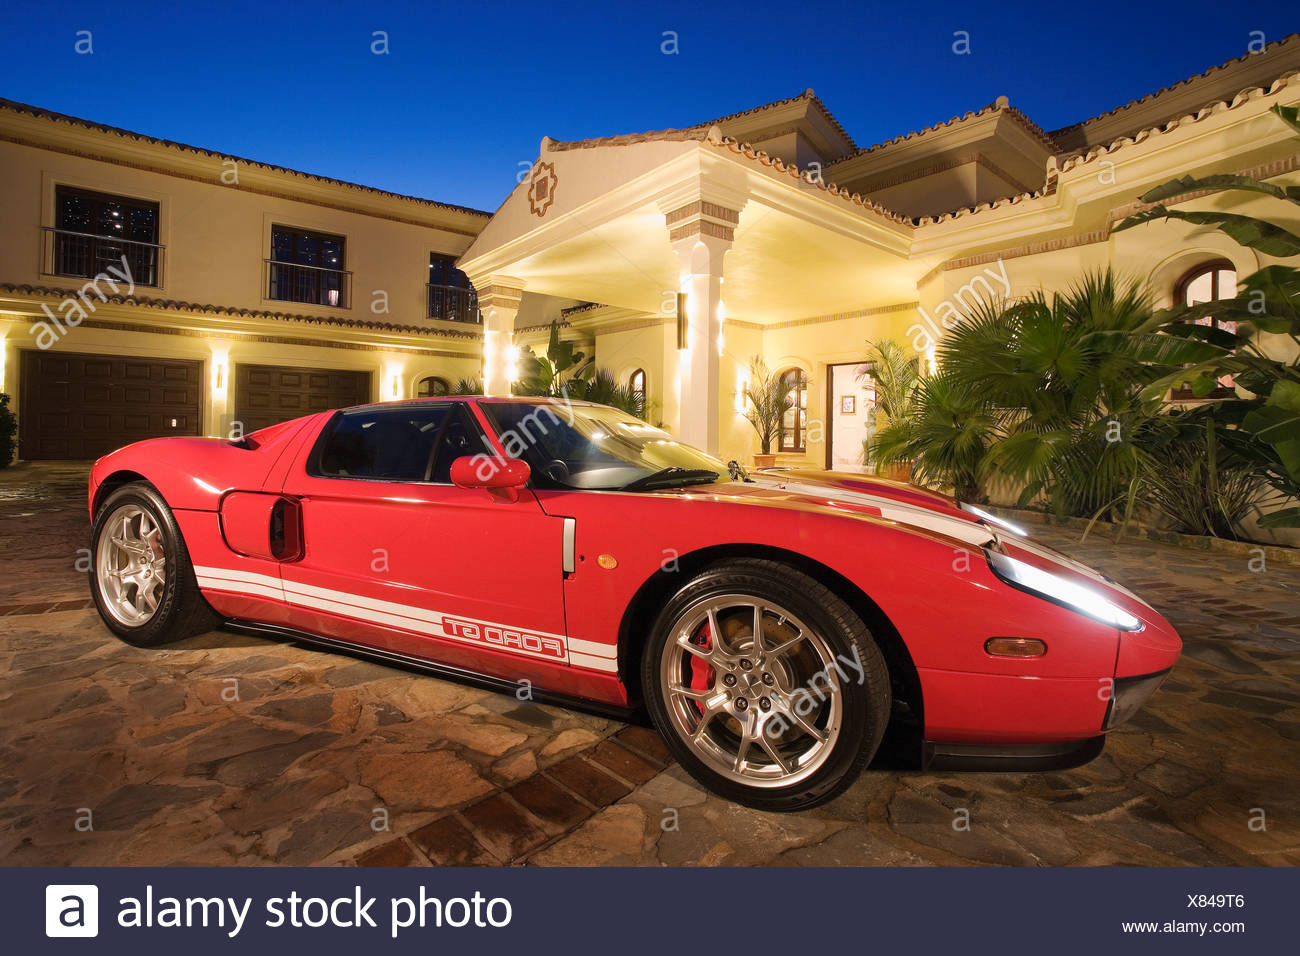 Red Ford Gt Sports Car In Front Of Spanish Villa Lit At Night